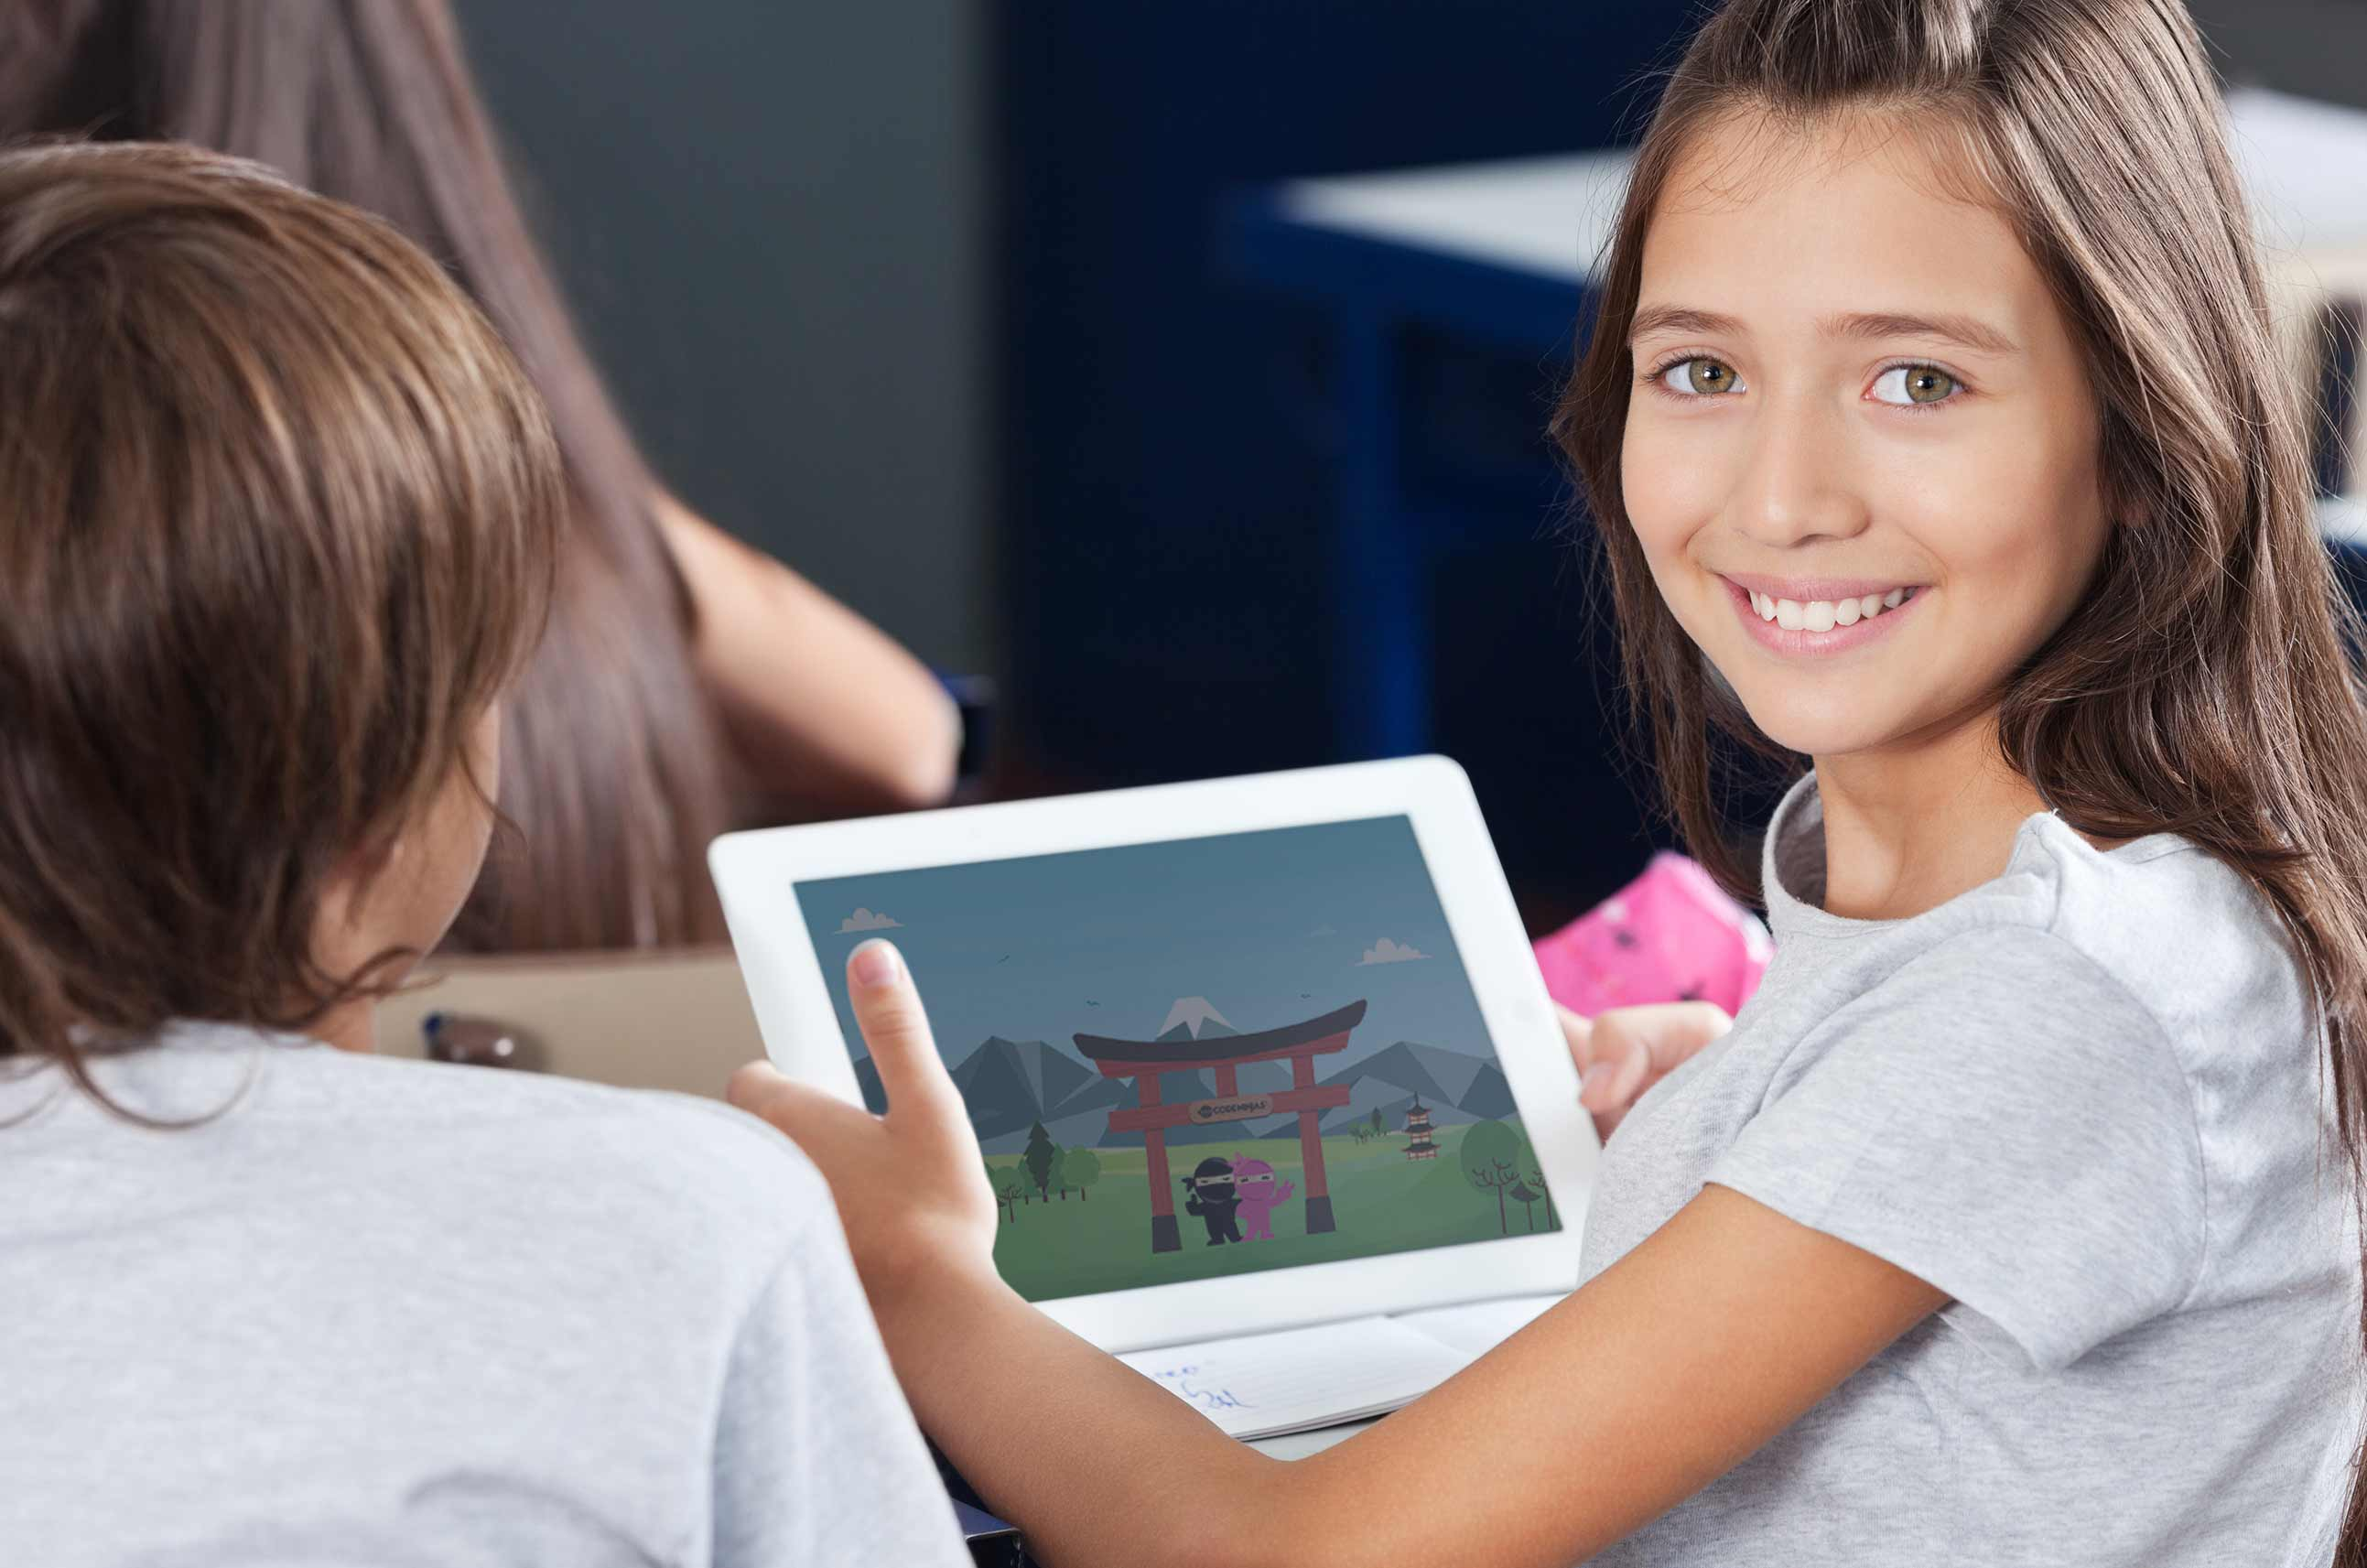 Girl smiling using a tablet